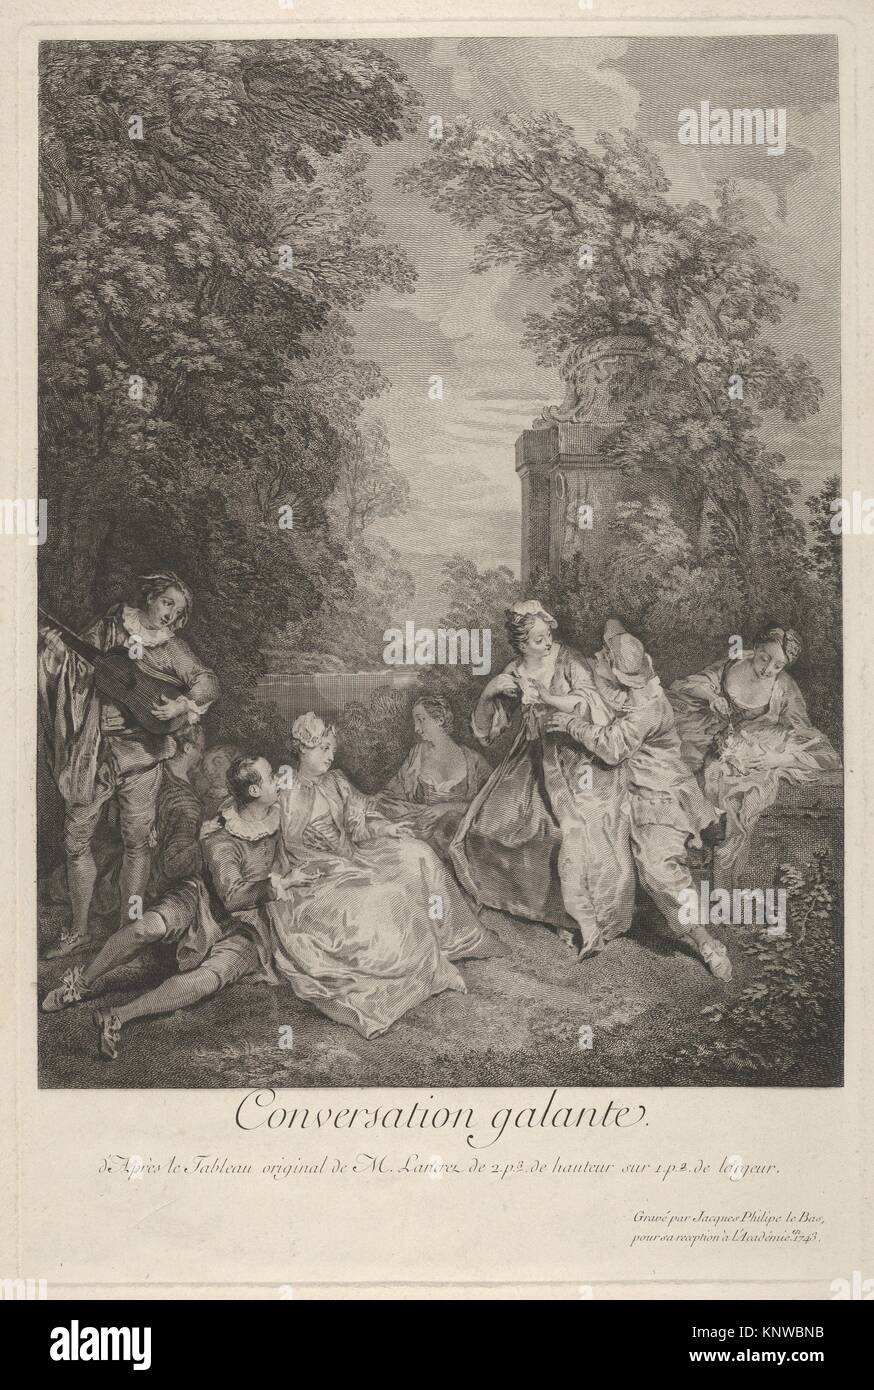 'Gallant conversation' (Conversation galante): couples engage in conversation in a garden setting, at left - Stock Image